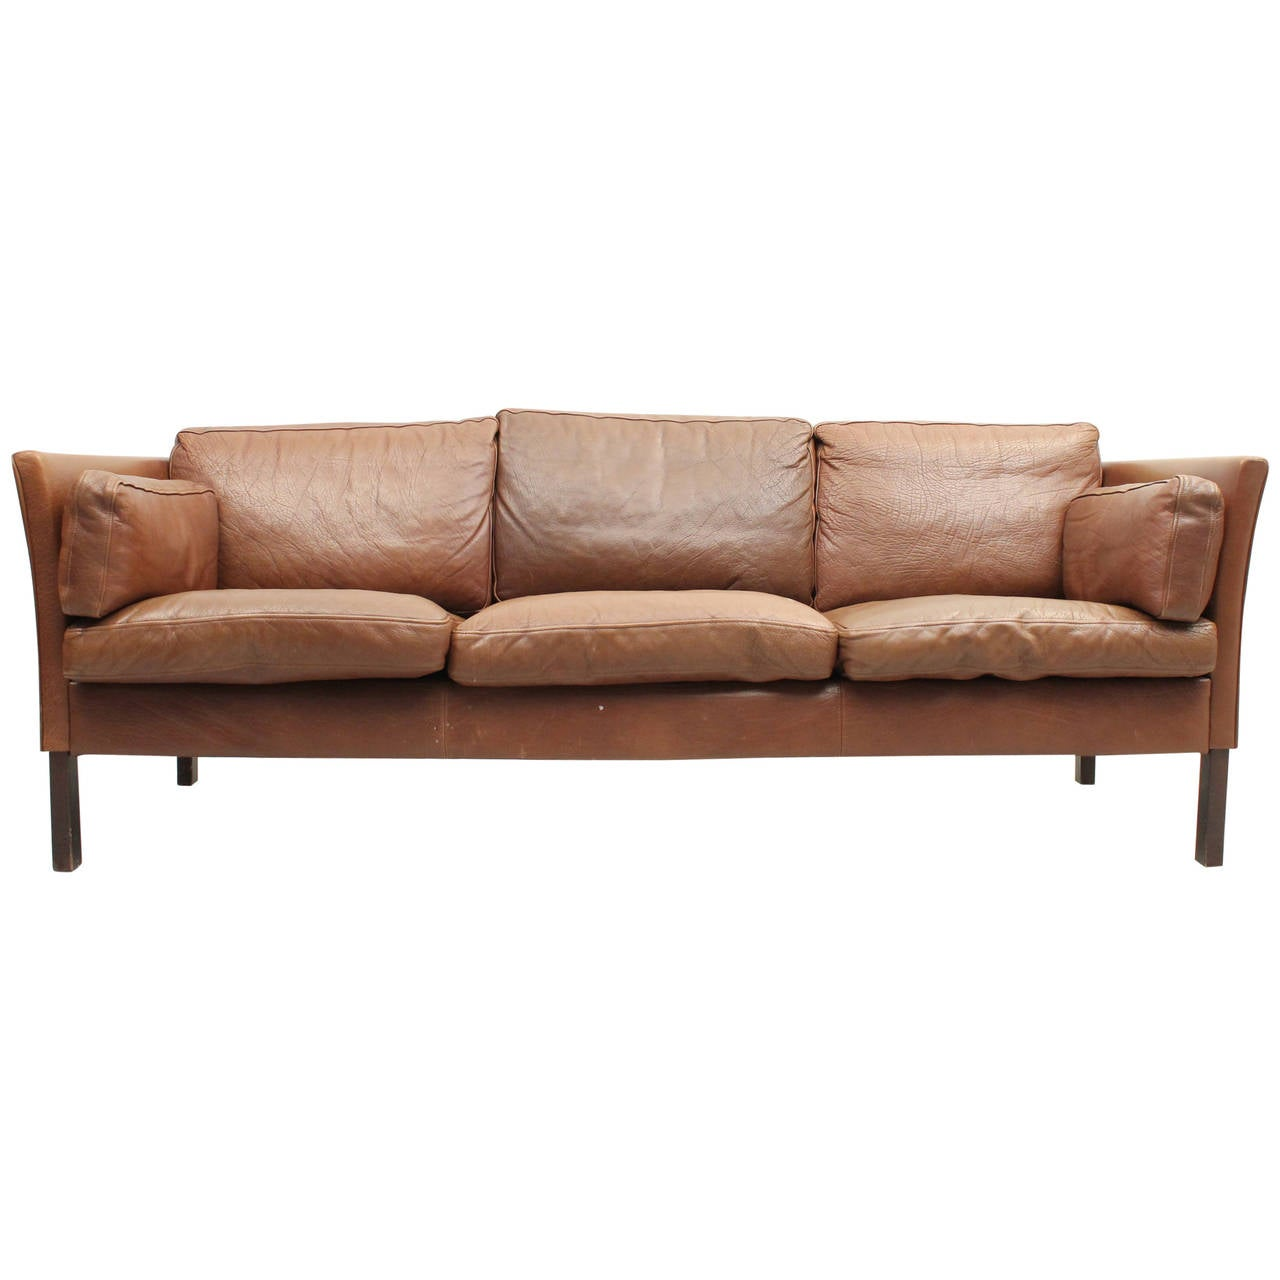 Danish Mid Century Modern Leather Sofa At 1stdibs ~ Tan Leather Mid Century Sofa